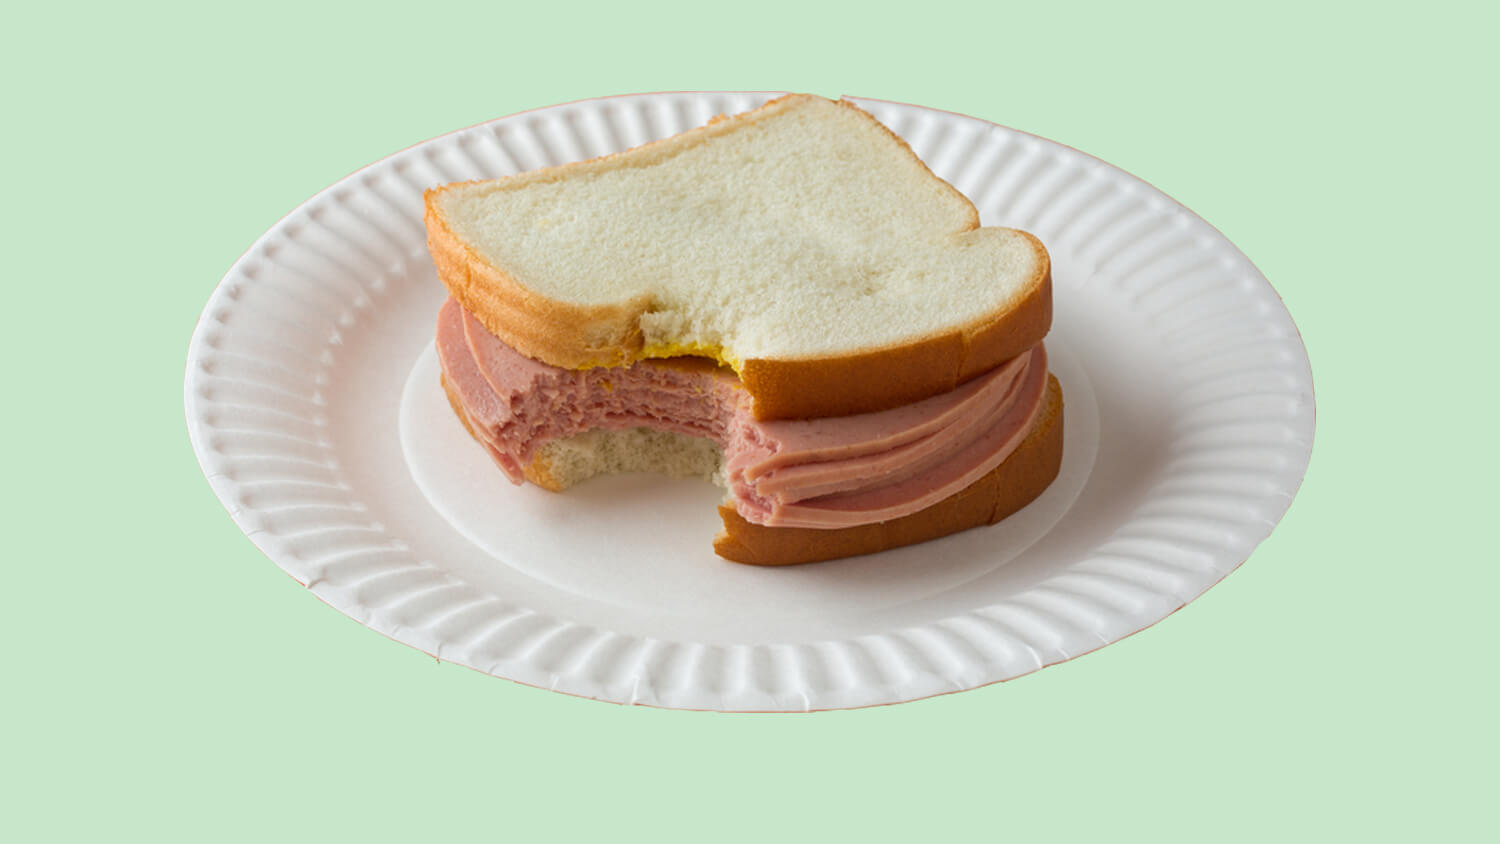 New York City Schools Just Banned Processed Meat